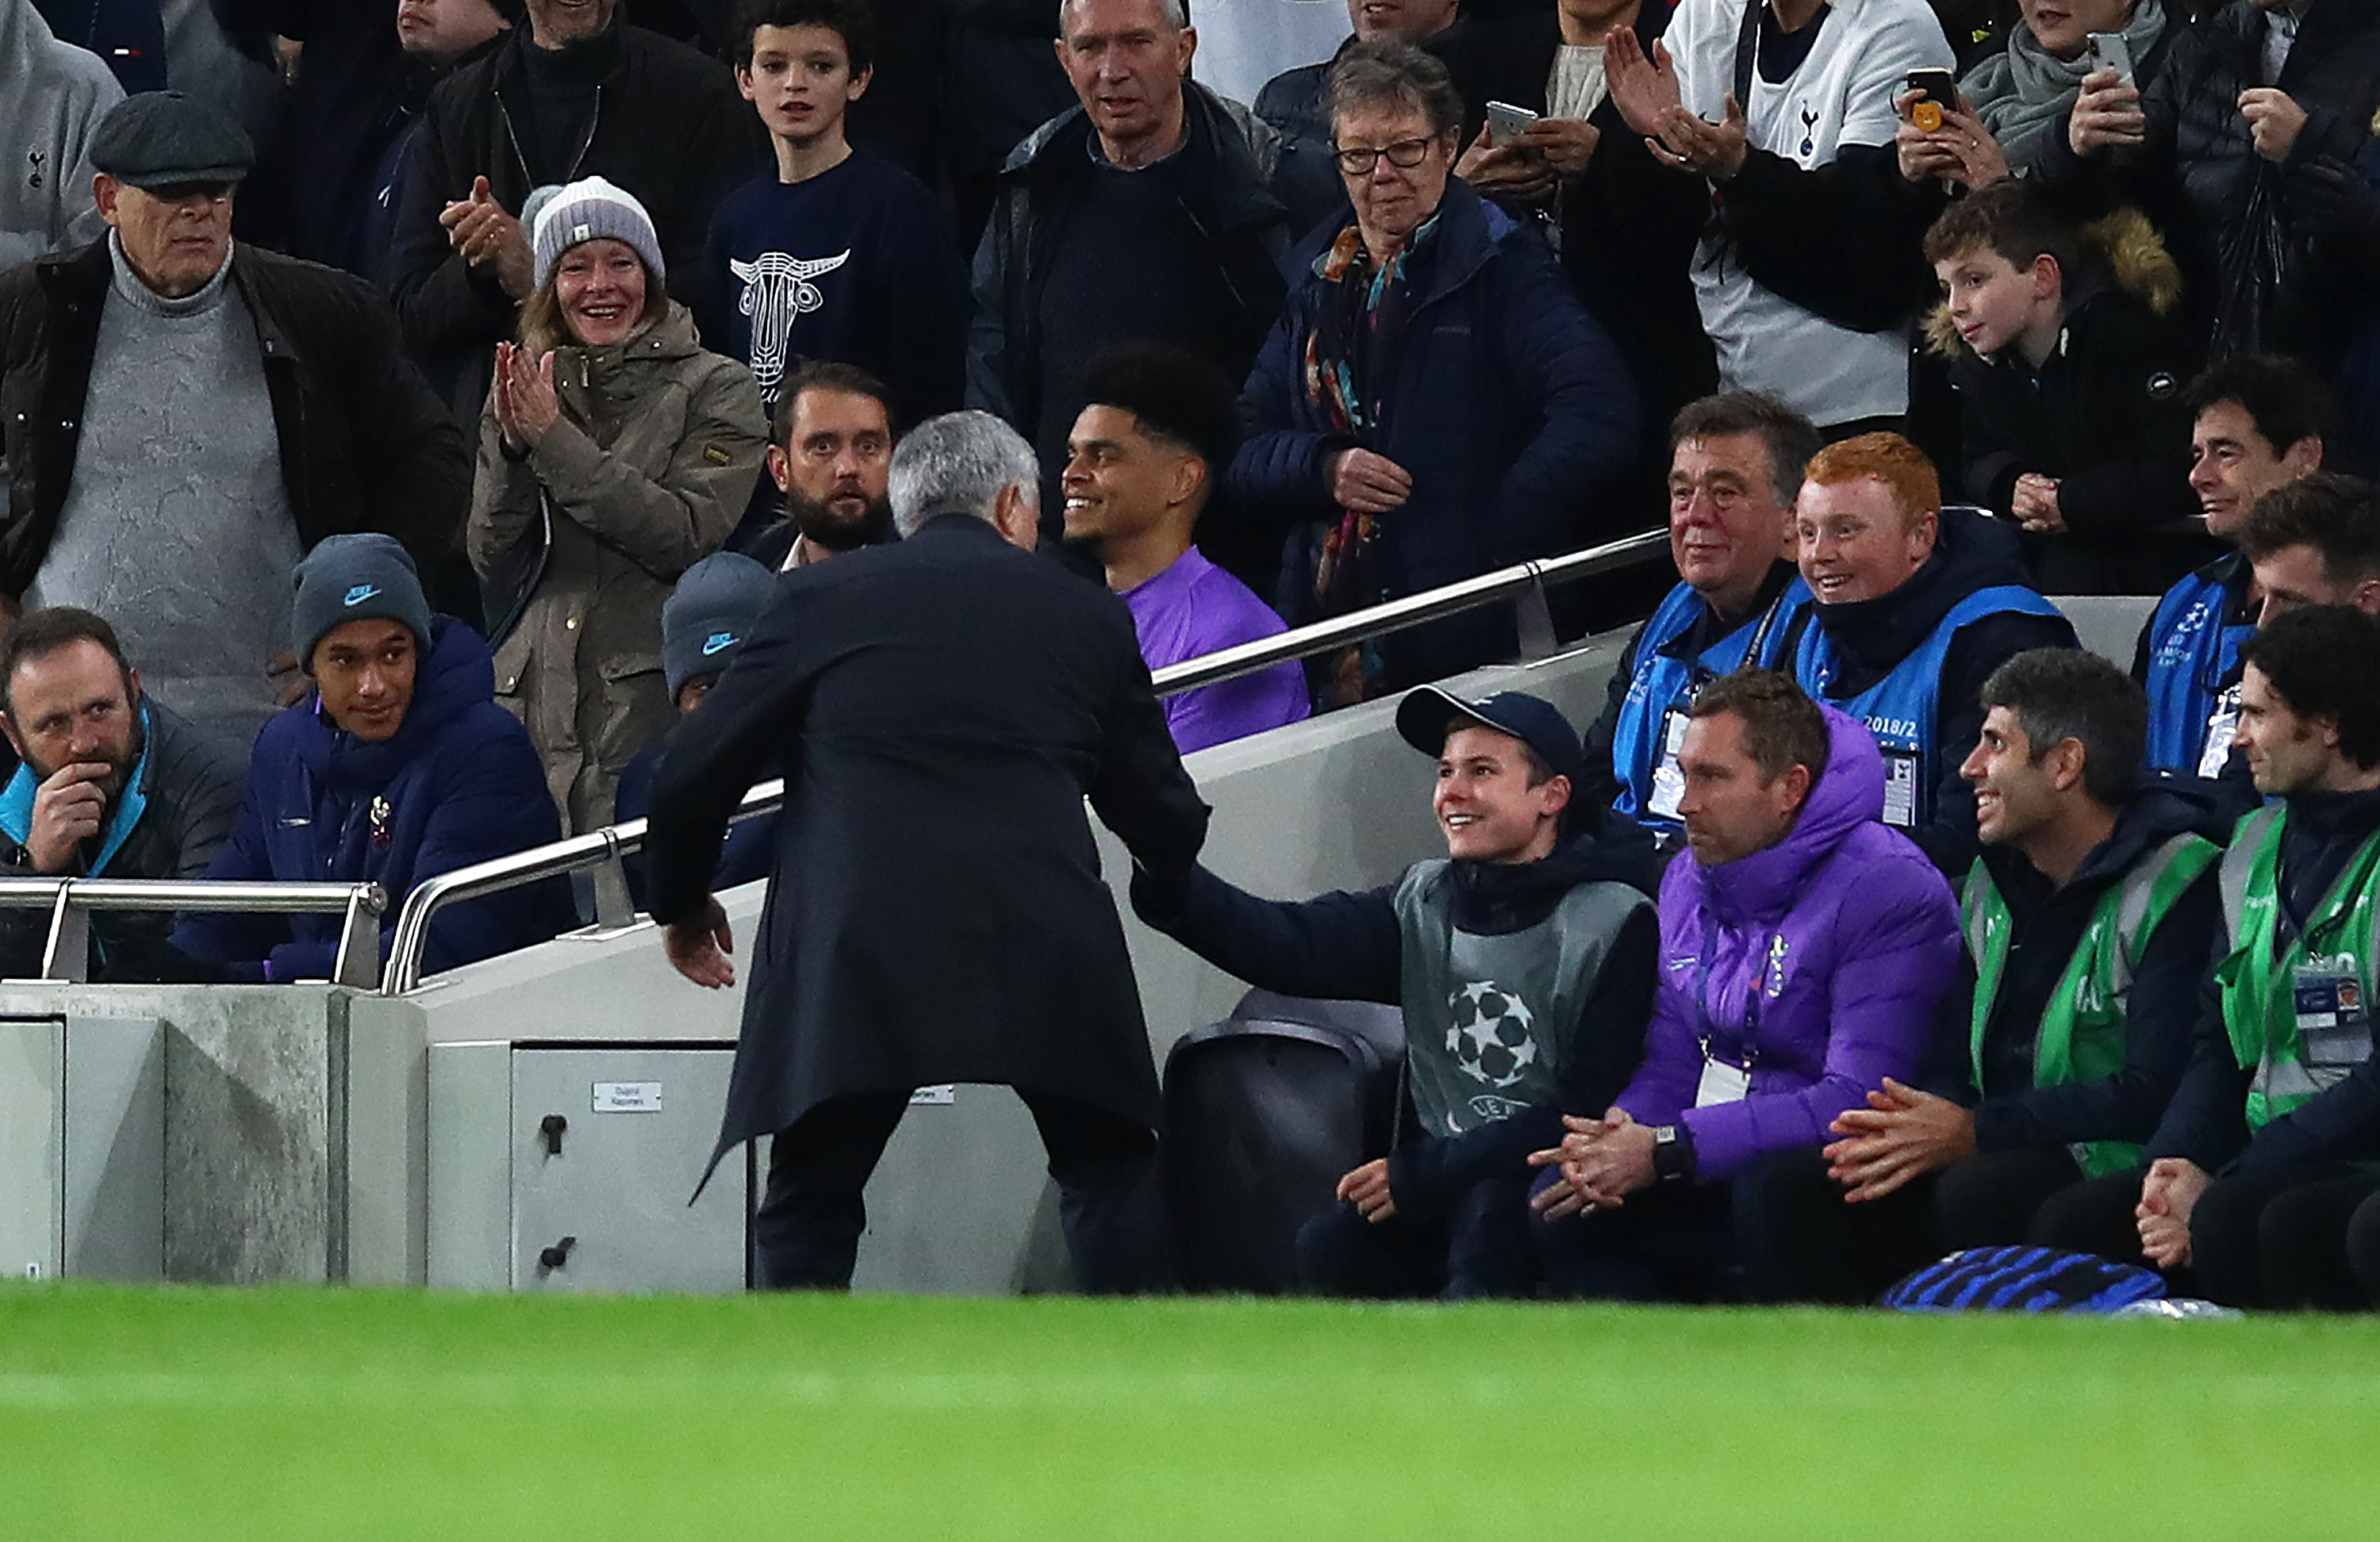 Spurs boss Jose Mourinho embraces the ball boy after his side drew level at 2-2